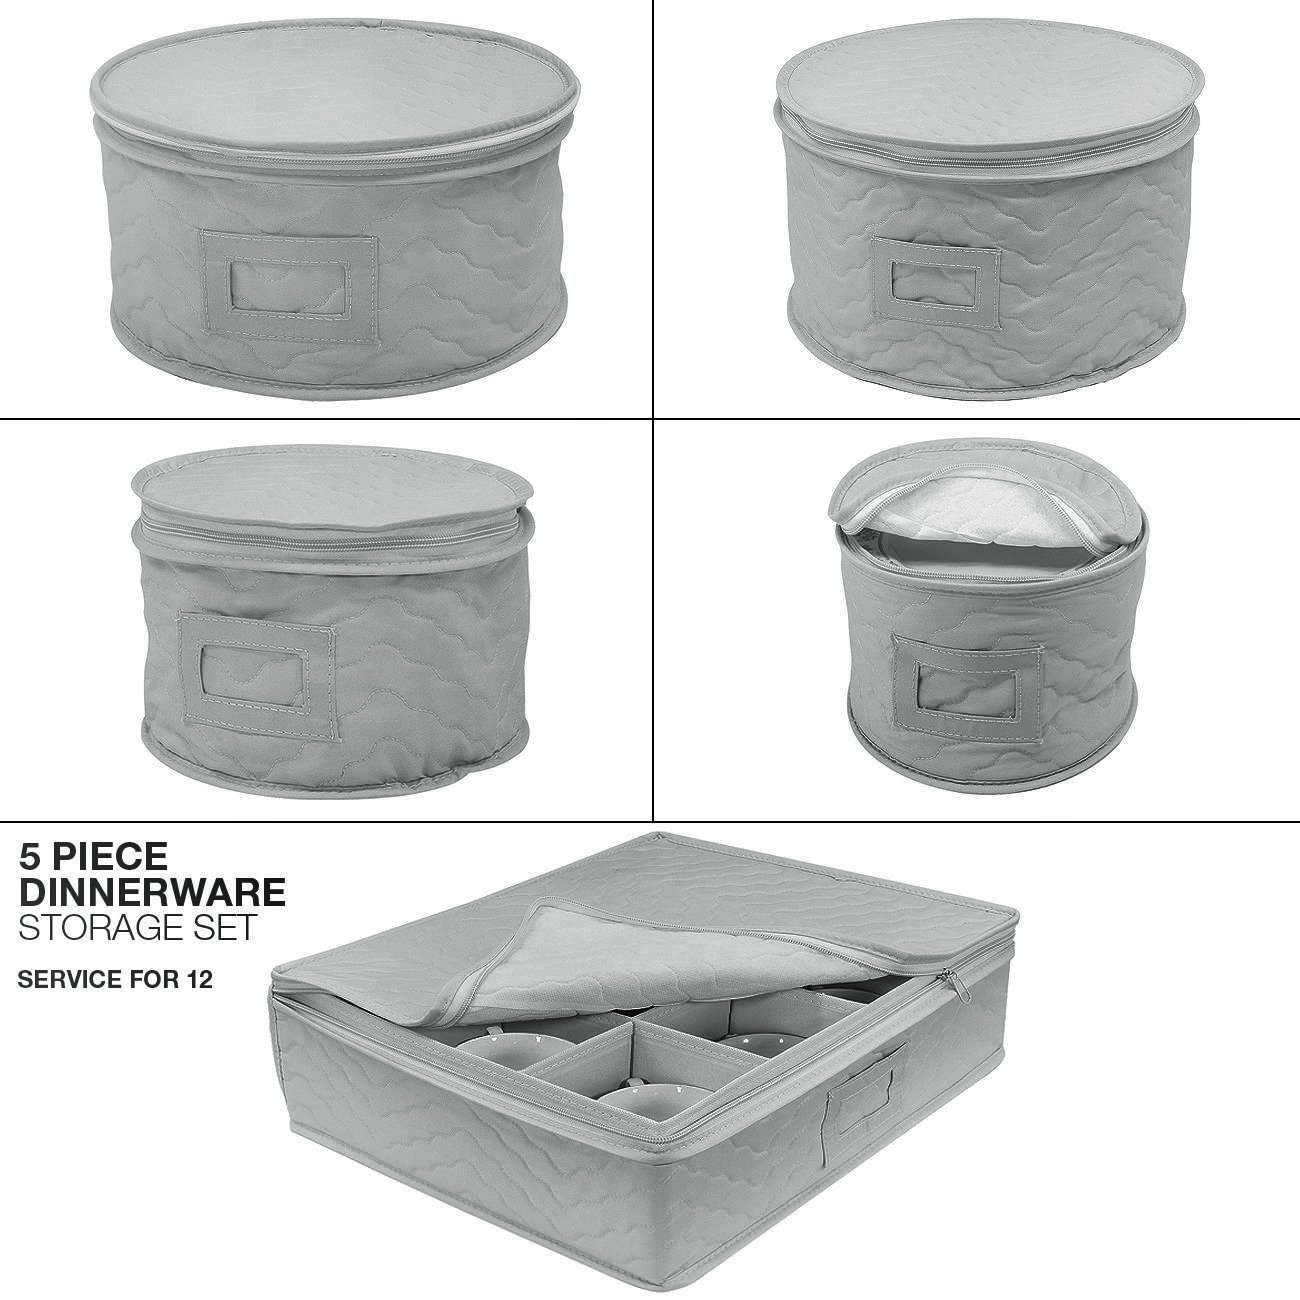 Sorbus Dinnerware Storage 5-Piece Set for Protecting or Transporting Dinnerware — Service for 12 — Round Plate and Cup Quilted Protection, Felt Protectors for Plates, Fine China Case (Gray) by Sorbus (Image #6)